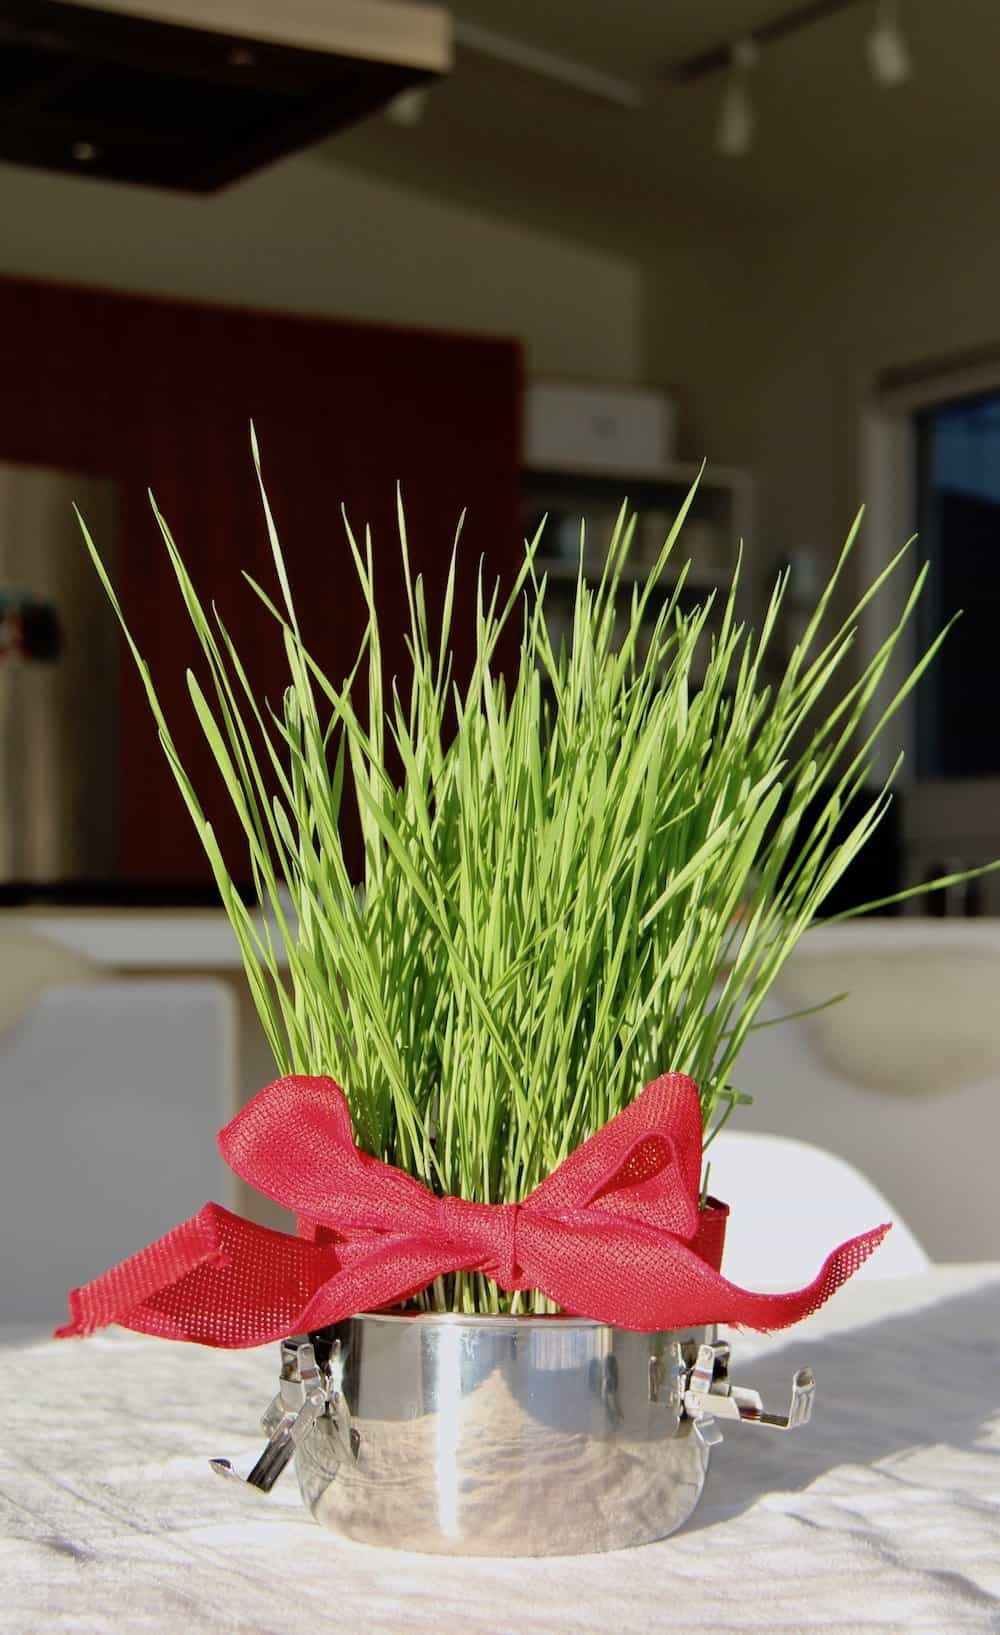 green wheatgrass blades growing out of round metal container with red bow around grass blades for a valentines gift